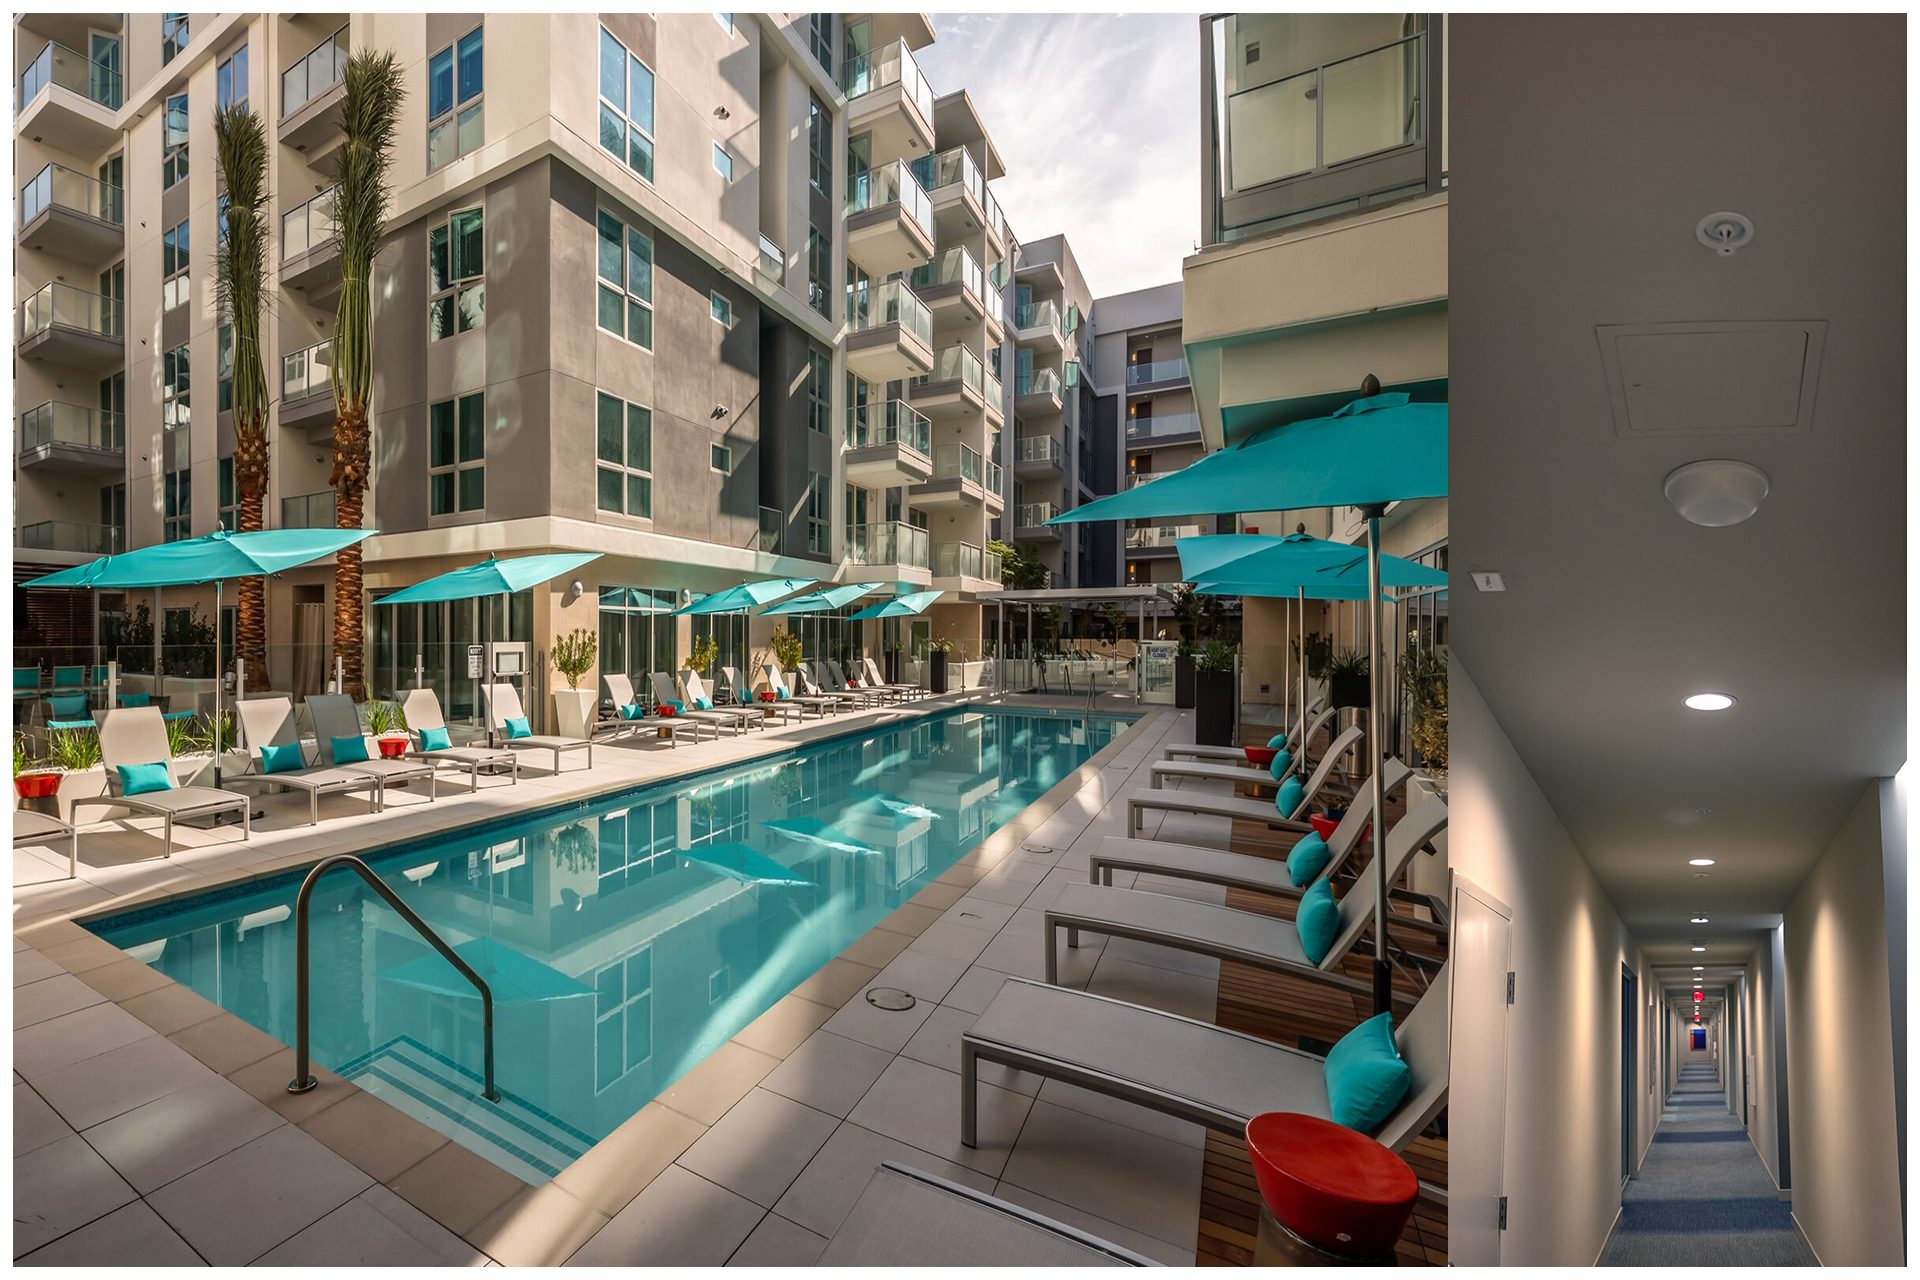 Expansive outdoor Courtyards & Pool Areas also featured cellular signal as well as WiFi.  All 400 Residential units received cellular signal from antennas installed in hallways (see right side photo) so as to provide easy access for service.  Fiber-based signal source from carriers ensures unlimited capacity for the 1000 plus residents, visitors and employees at the venue.